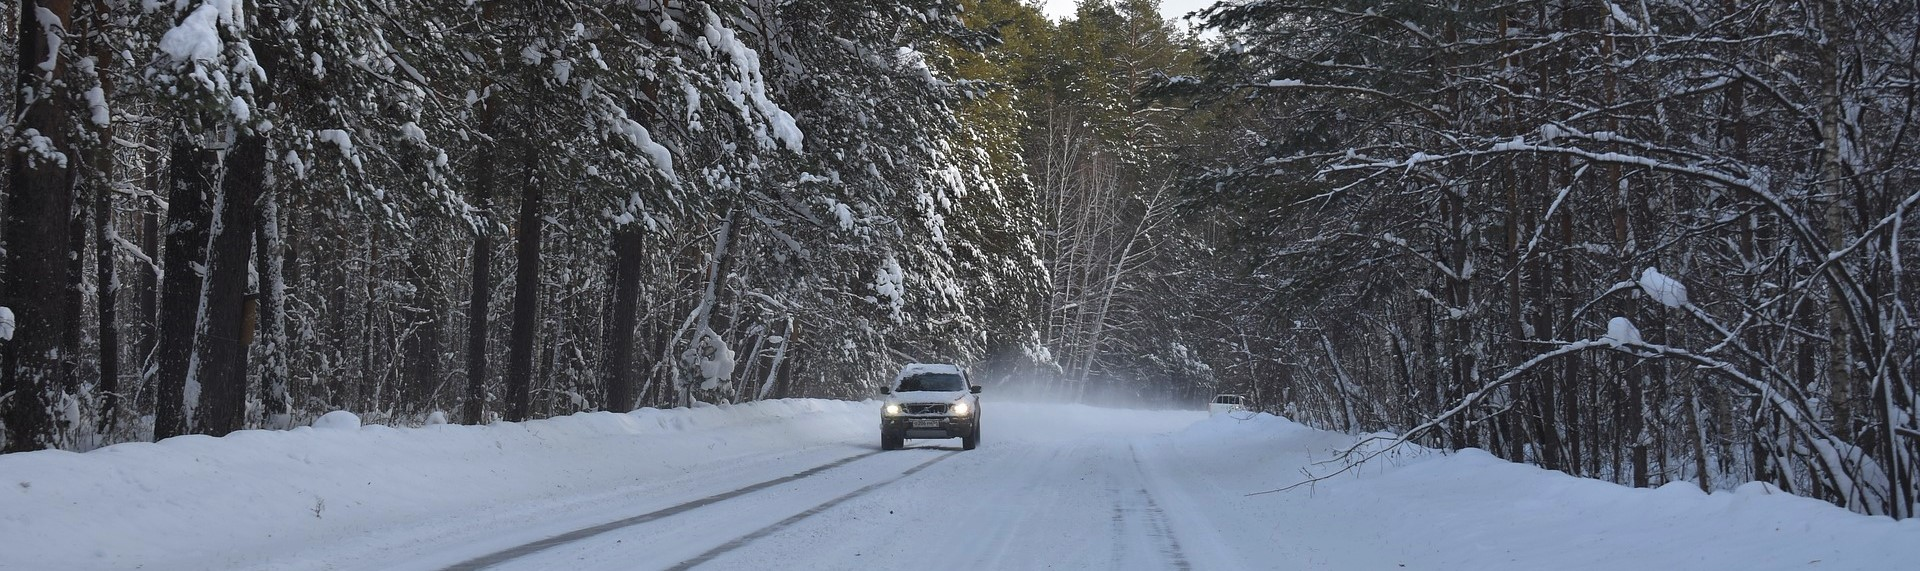 Off Road on a Winter Season | Breast Cancer Car Donations